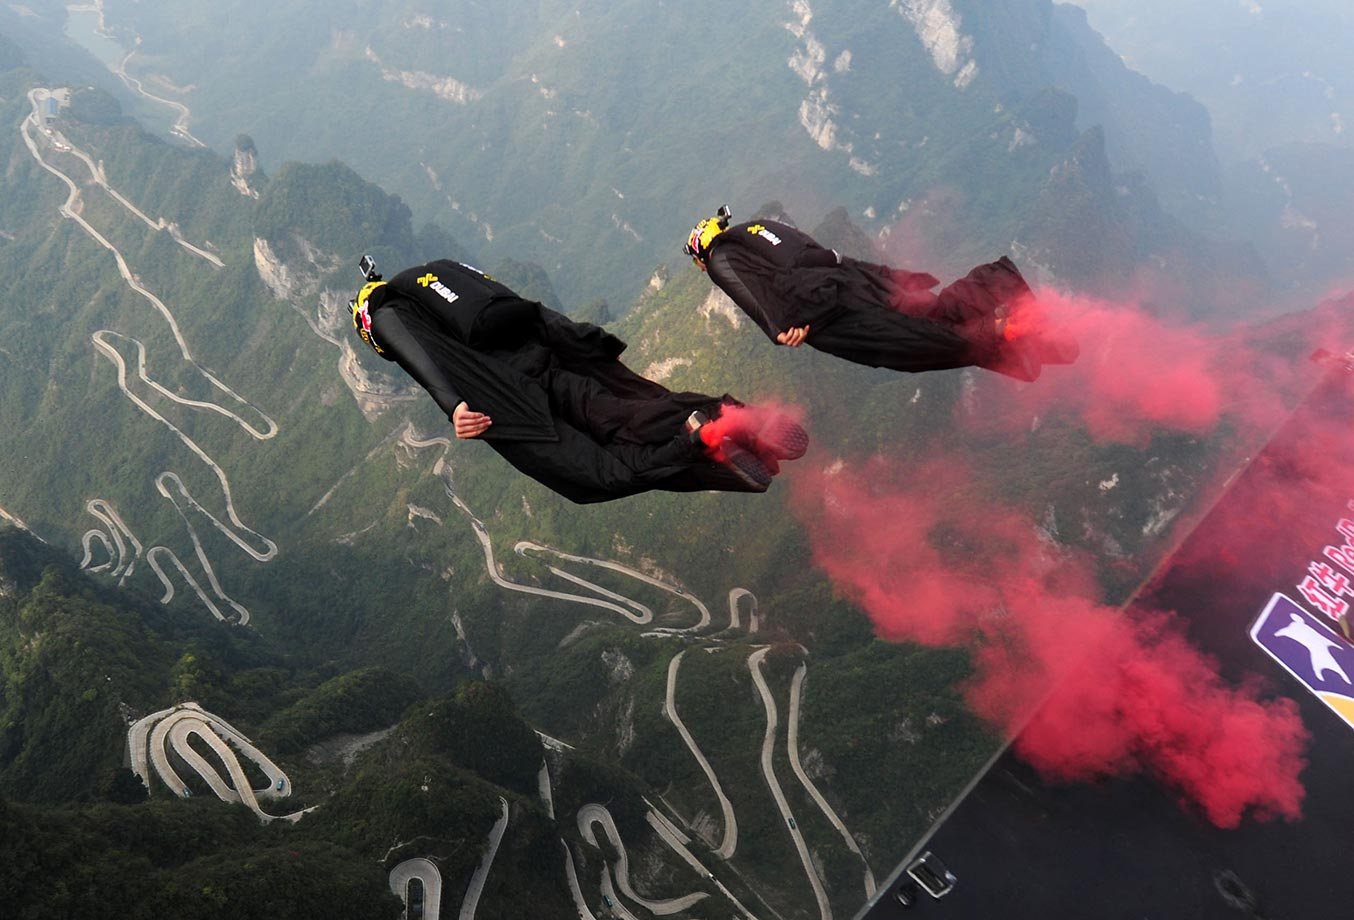 Wingsuit jumpers take off from the Tianmenshan scenic spot during the Fourth International Wingsuit Campaign in China.